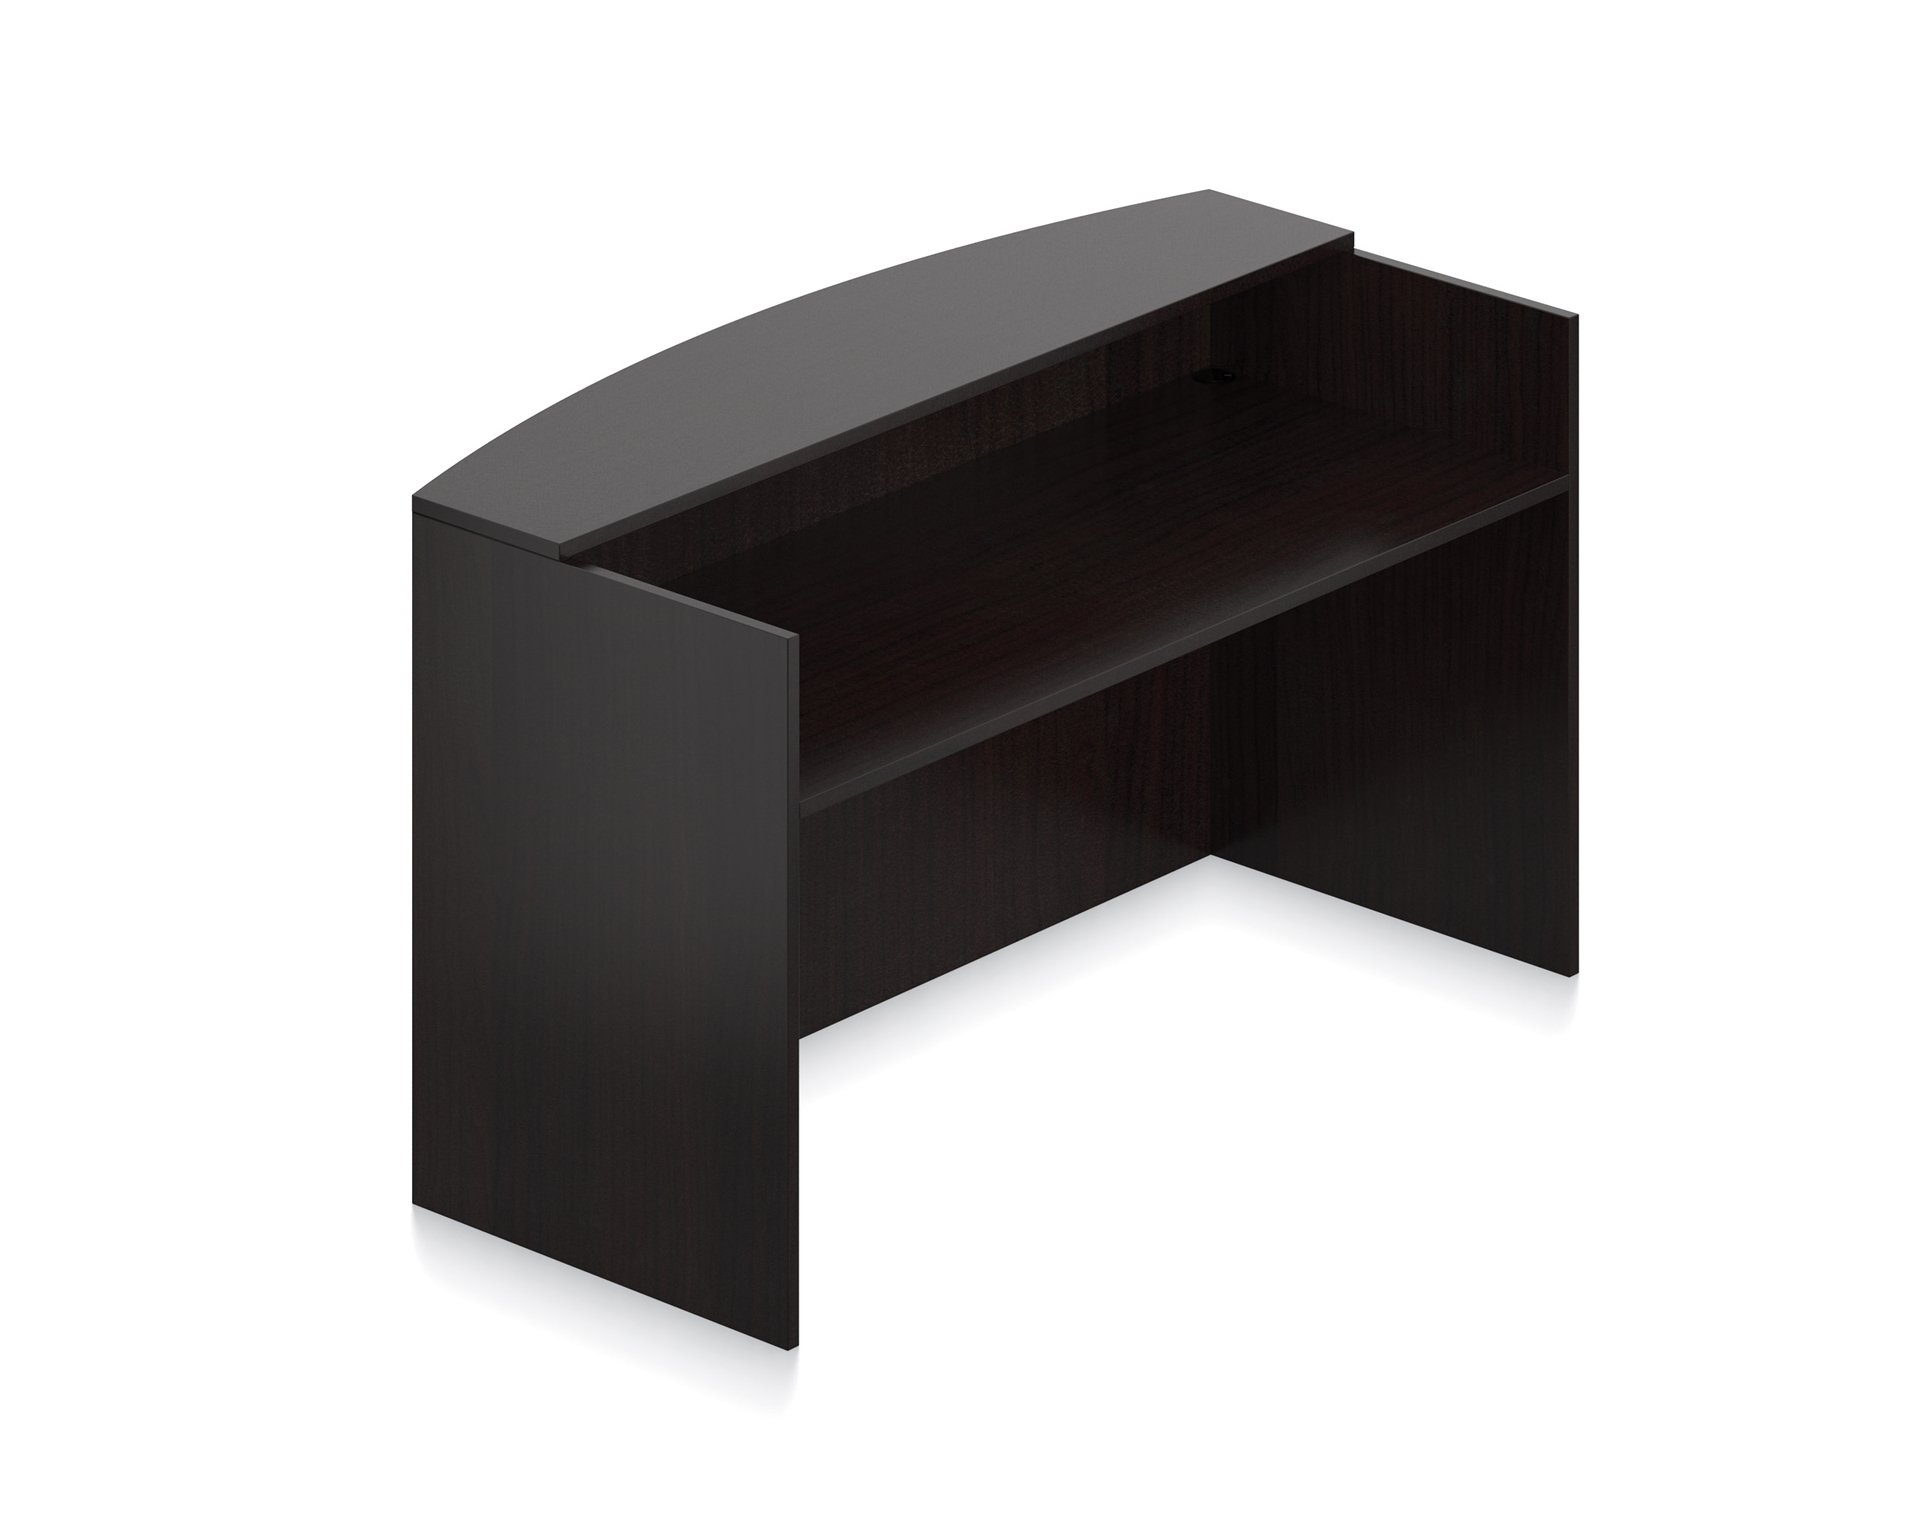 Offices To Go Office Reception Desk Shell Dimensions: 72''W X 30''D X 42''H - American Espresso by Offices To Go